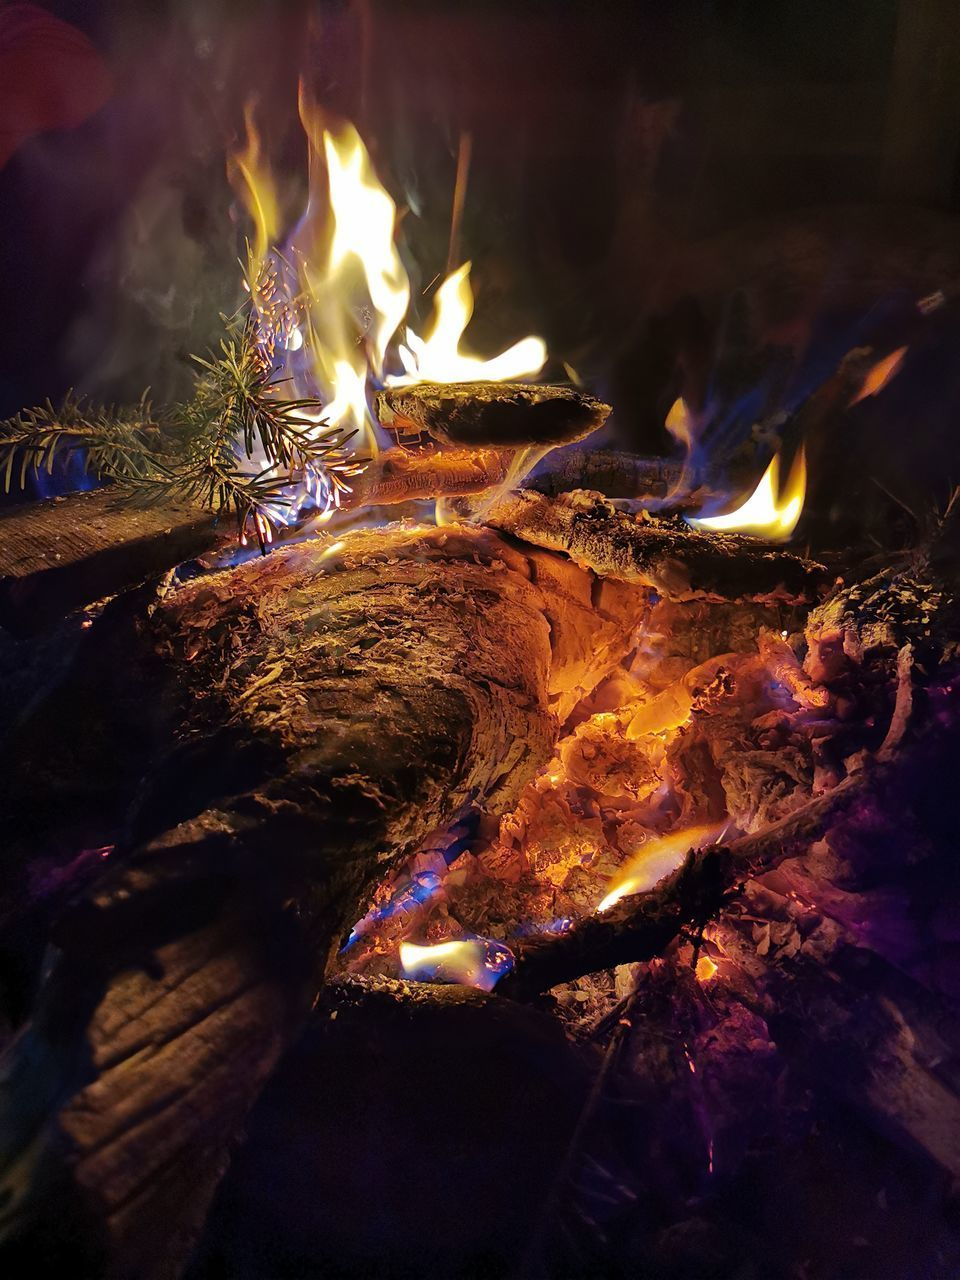 flame, burning, fire, fire - natural phenomenon, heat - temperature, wood, wood - material, log, glowing, firewood, nature, night, bonfire, illuminated, motion, close-up, no people, environment, high angle view, outdoors, campfire